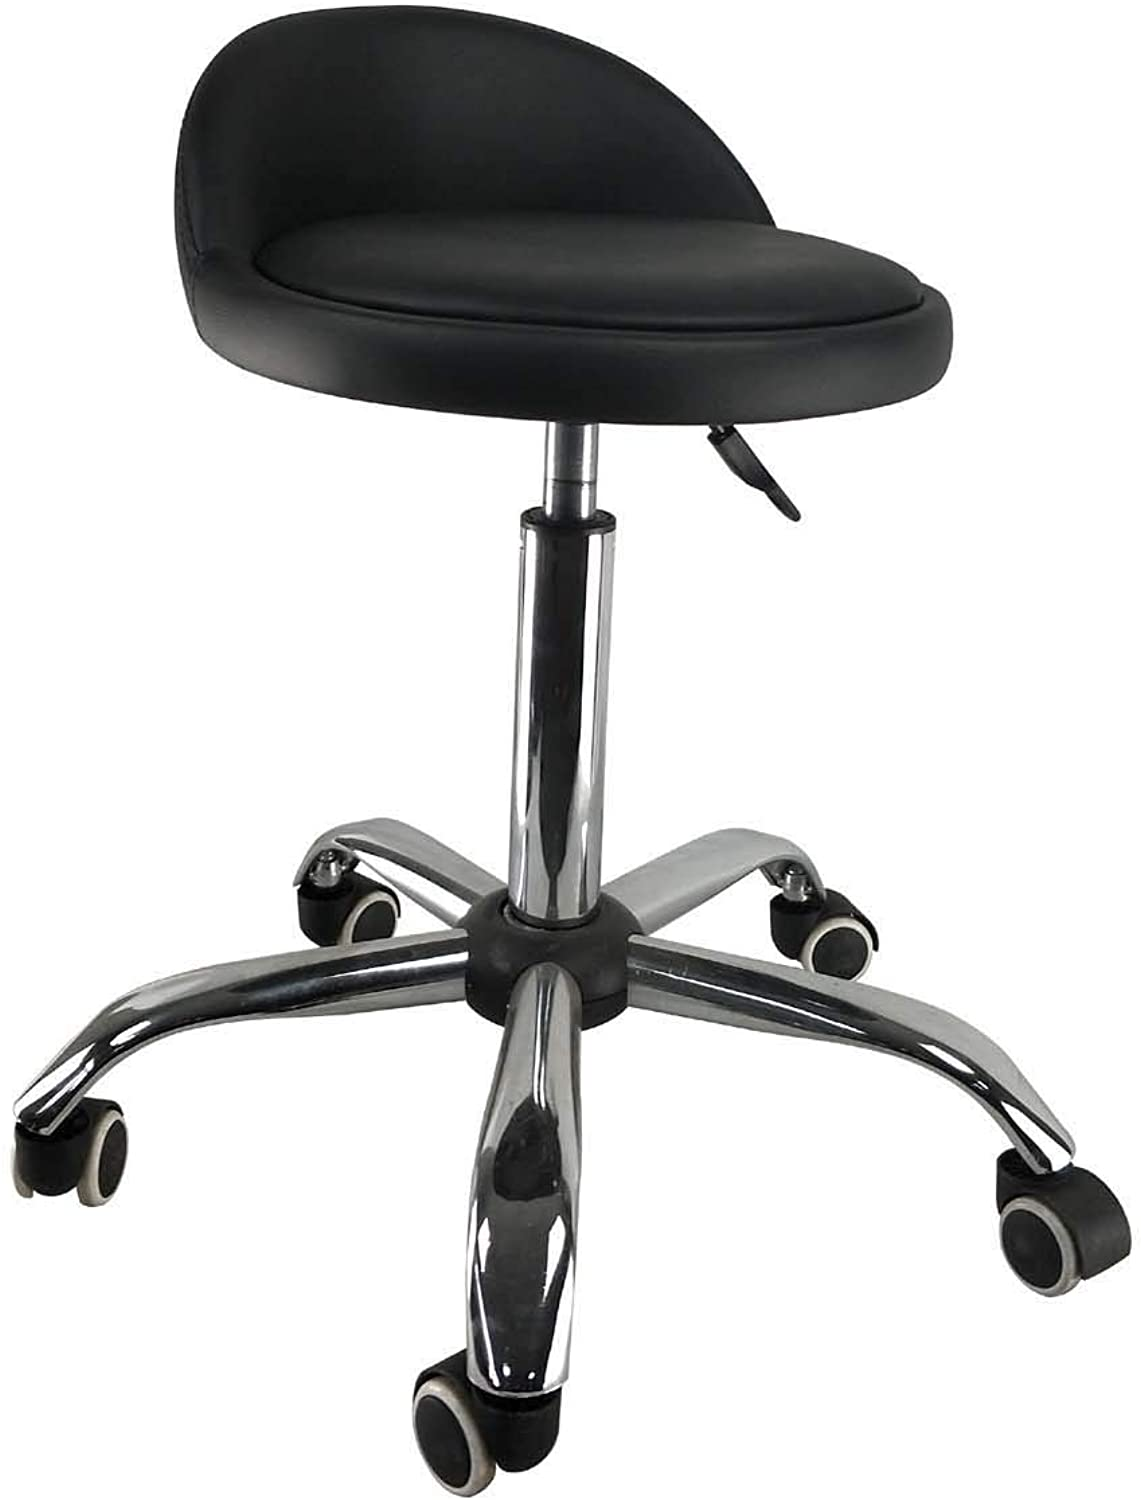 Adjustable Hydraulic Rolling Swivel Salon Stool Chair Tattoo Massage Facial Spa Stool Chair with Back Rest